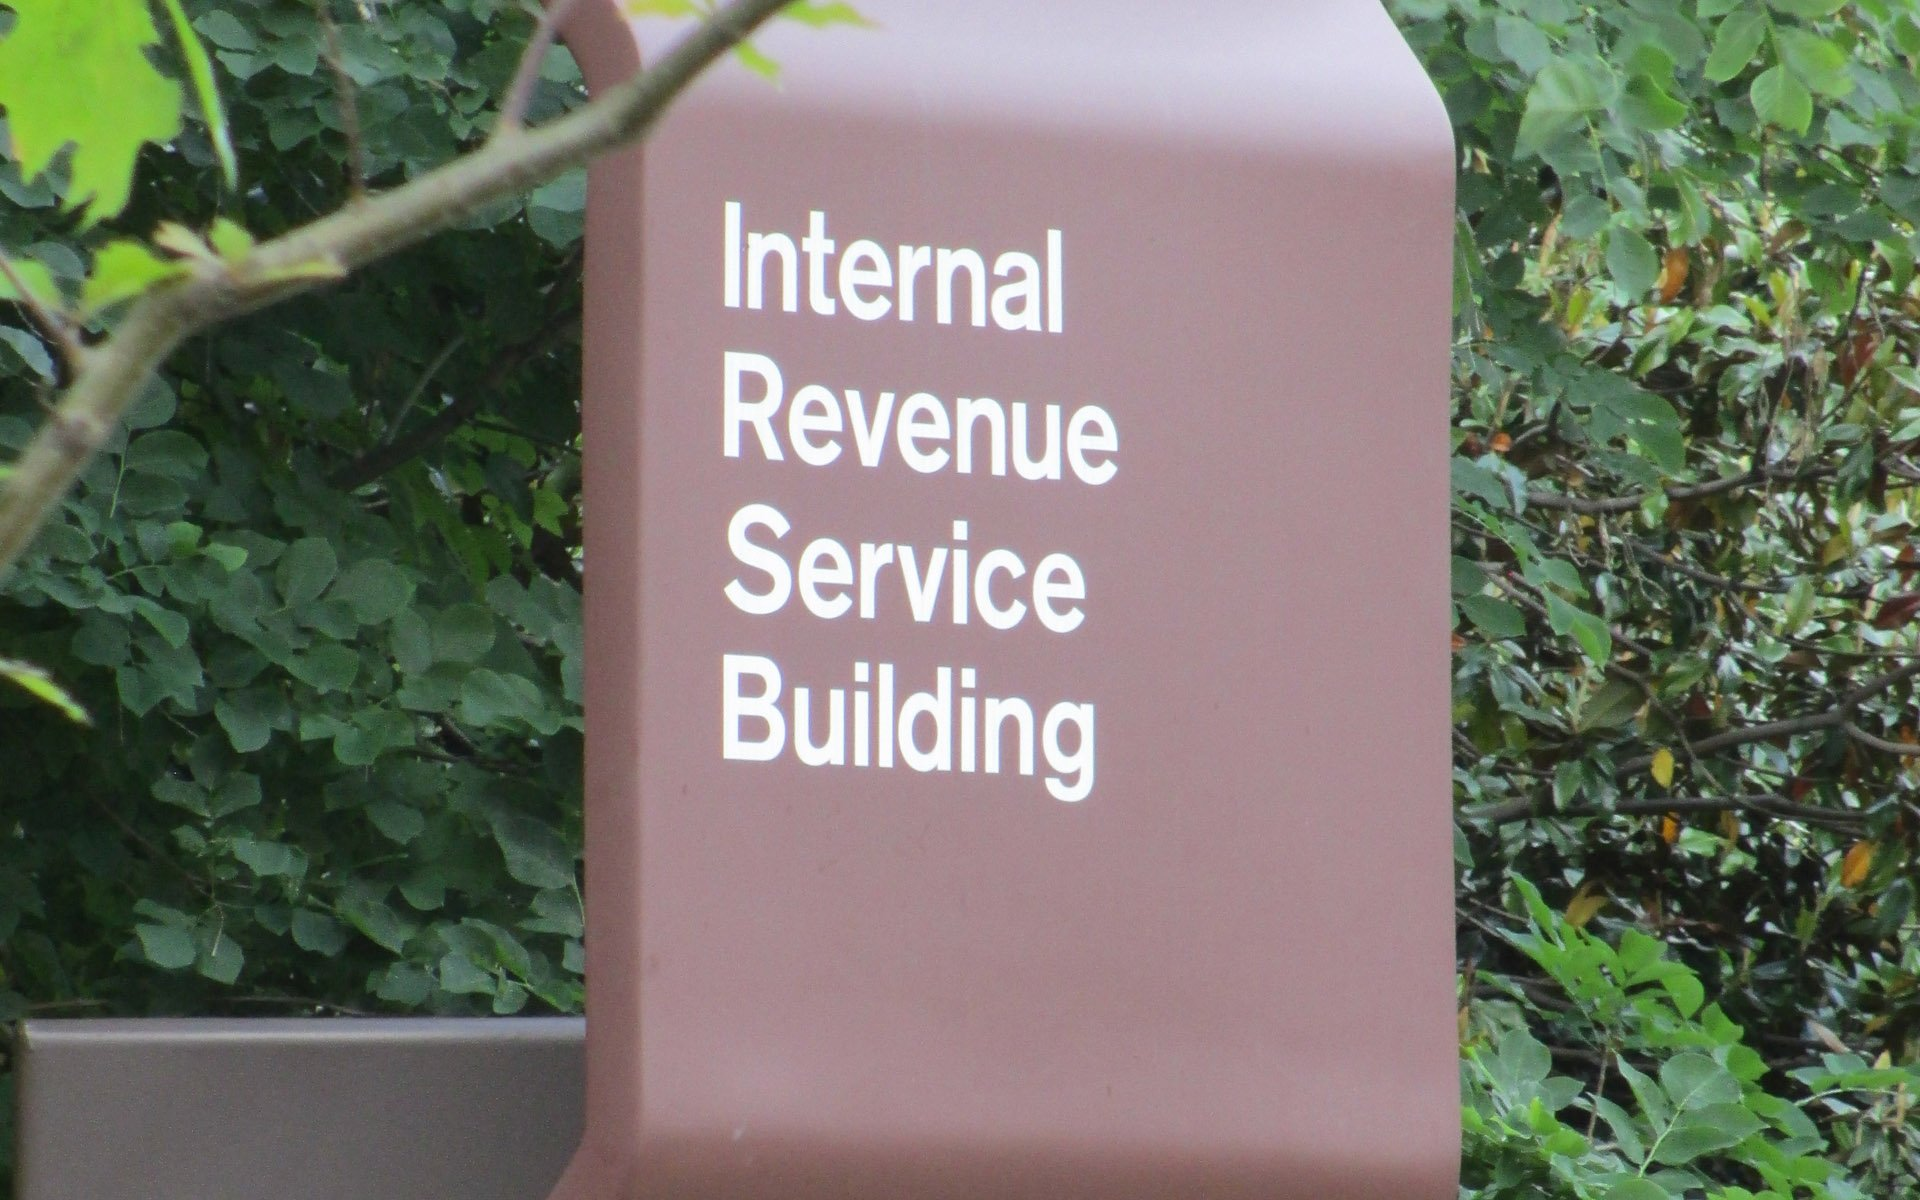 Crypto firms to discuss digital currency taxing at approaching IRS summit